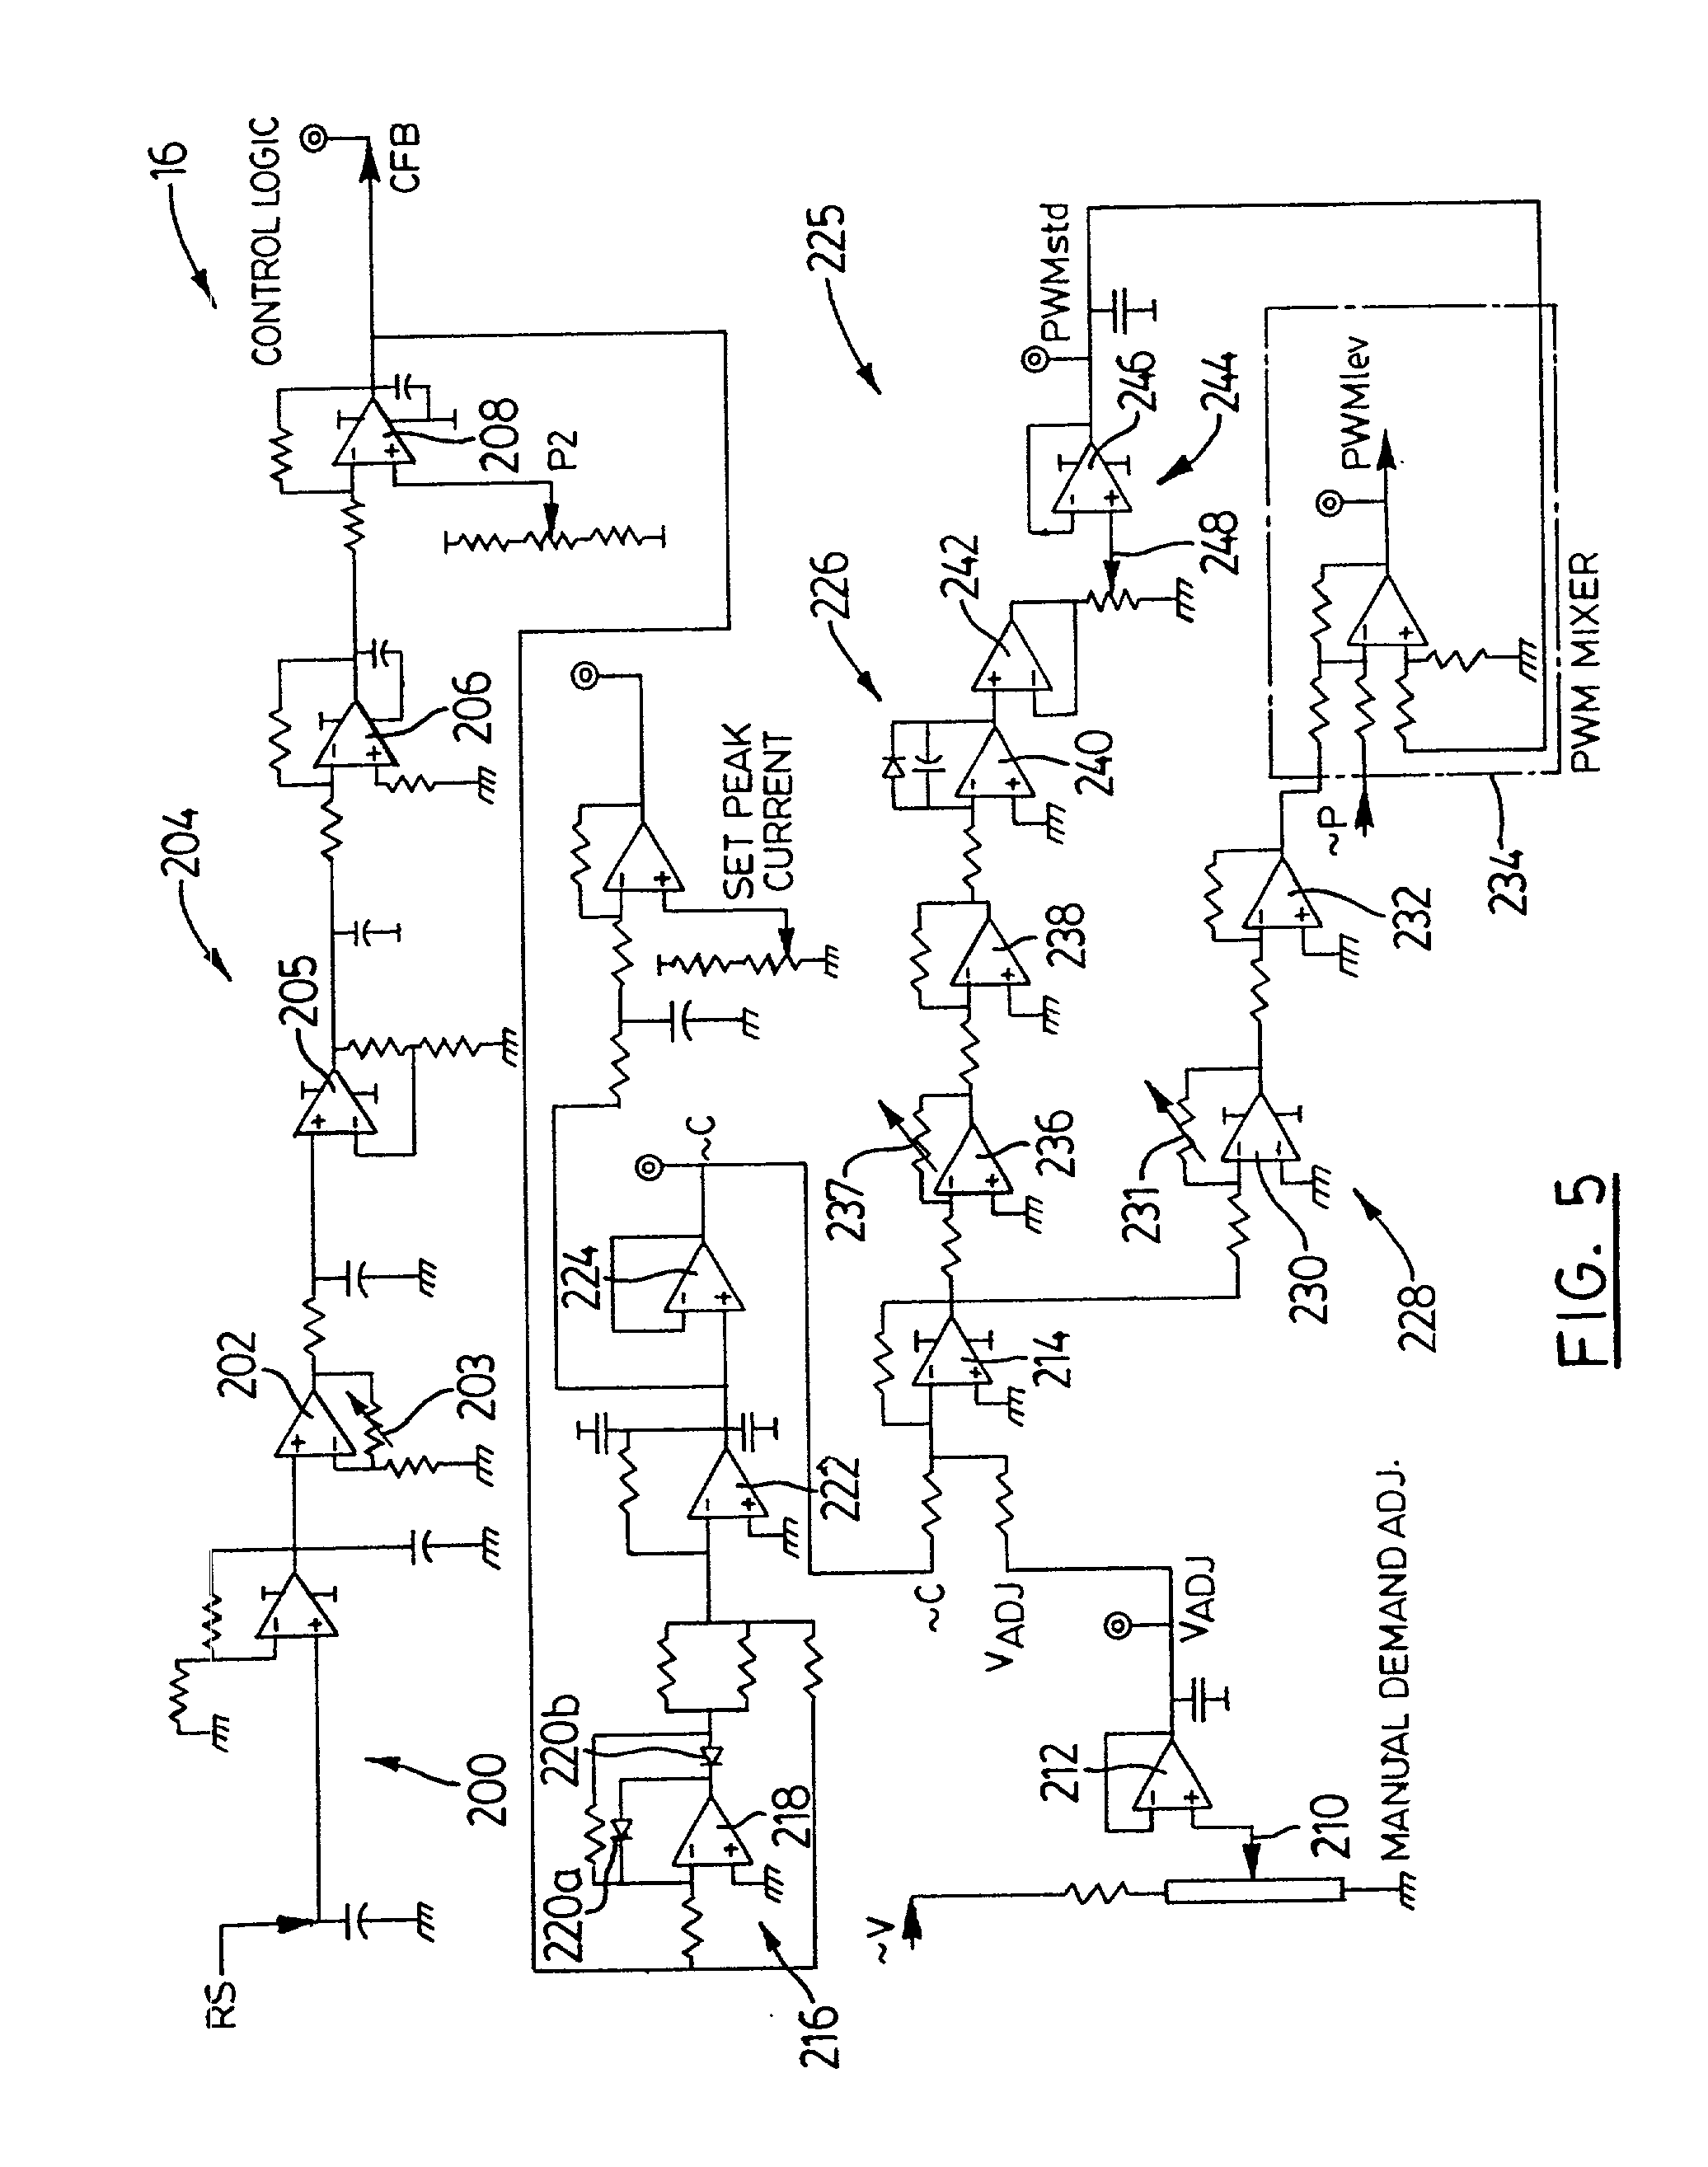 paten us20020017881 apparatus for dimming a fluorescent l with Light Ballast Wiring Diagram patent drawing